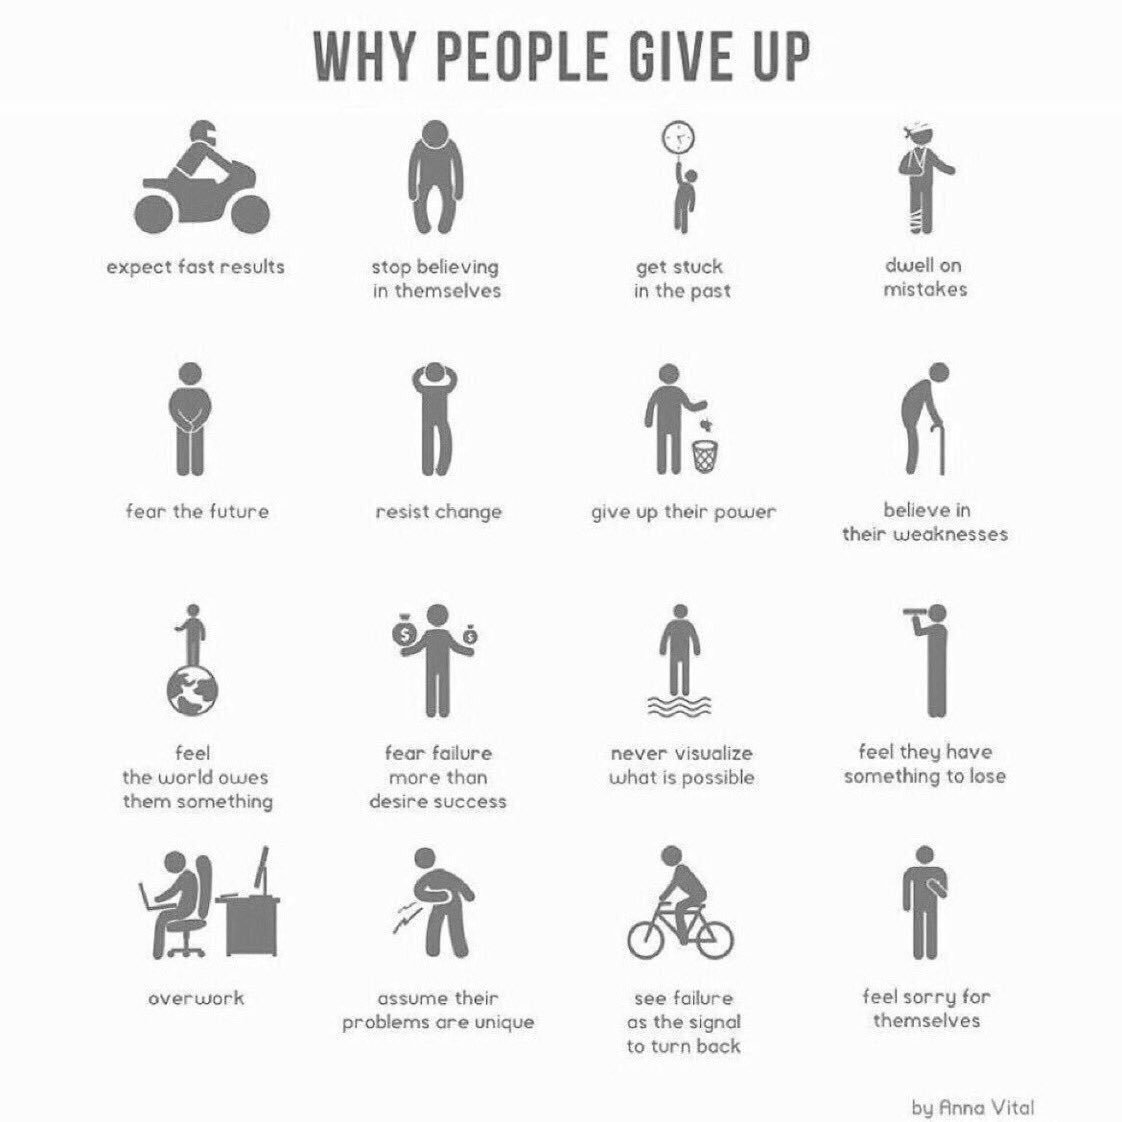 Why people give up  1. Expect fast results 2. Get stuck in the past 3. Dwell on mistakes 4. Fear the future 5. Resist change 6. Give up their power 7. Feel world owes them 8. Believe in their weaknesses 9. Overwork 10. Can't visualize the possible 11. Stop believing in themselves https://t.co/OPKnbjWzDS